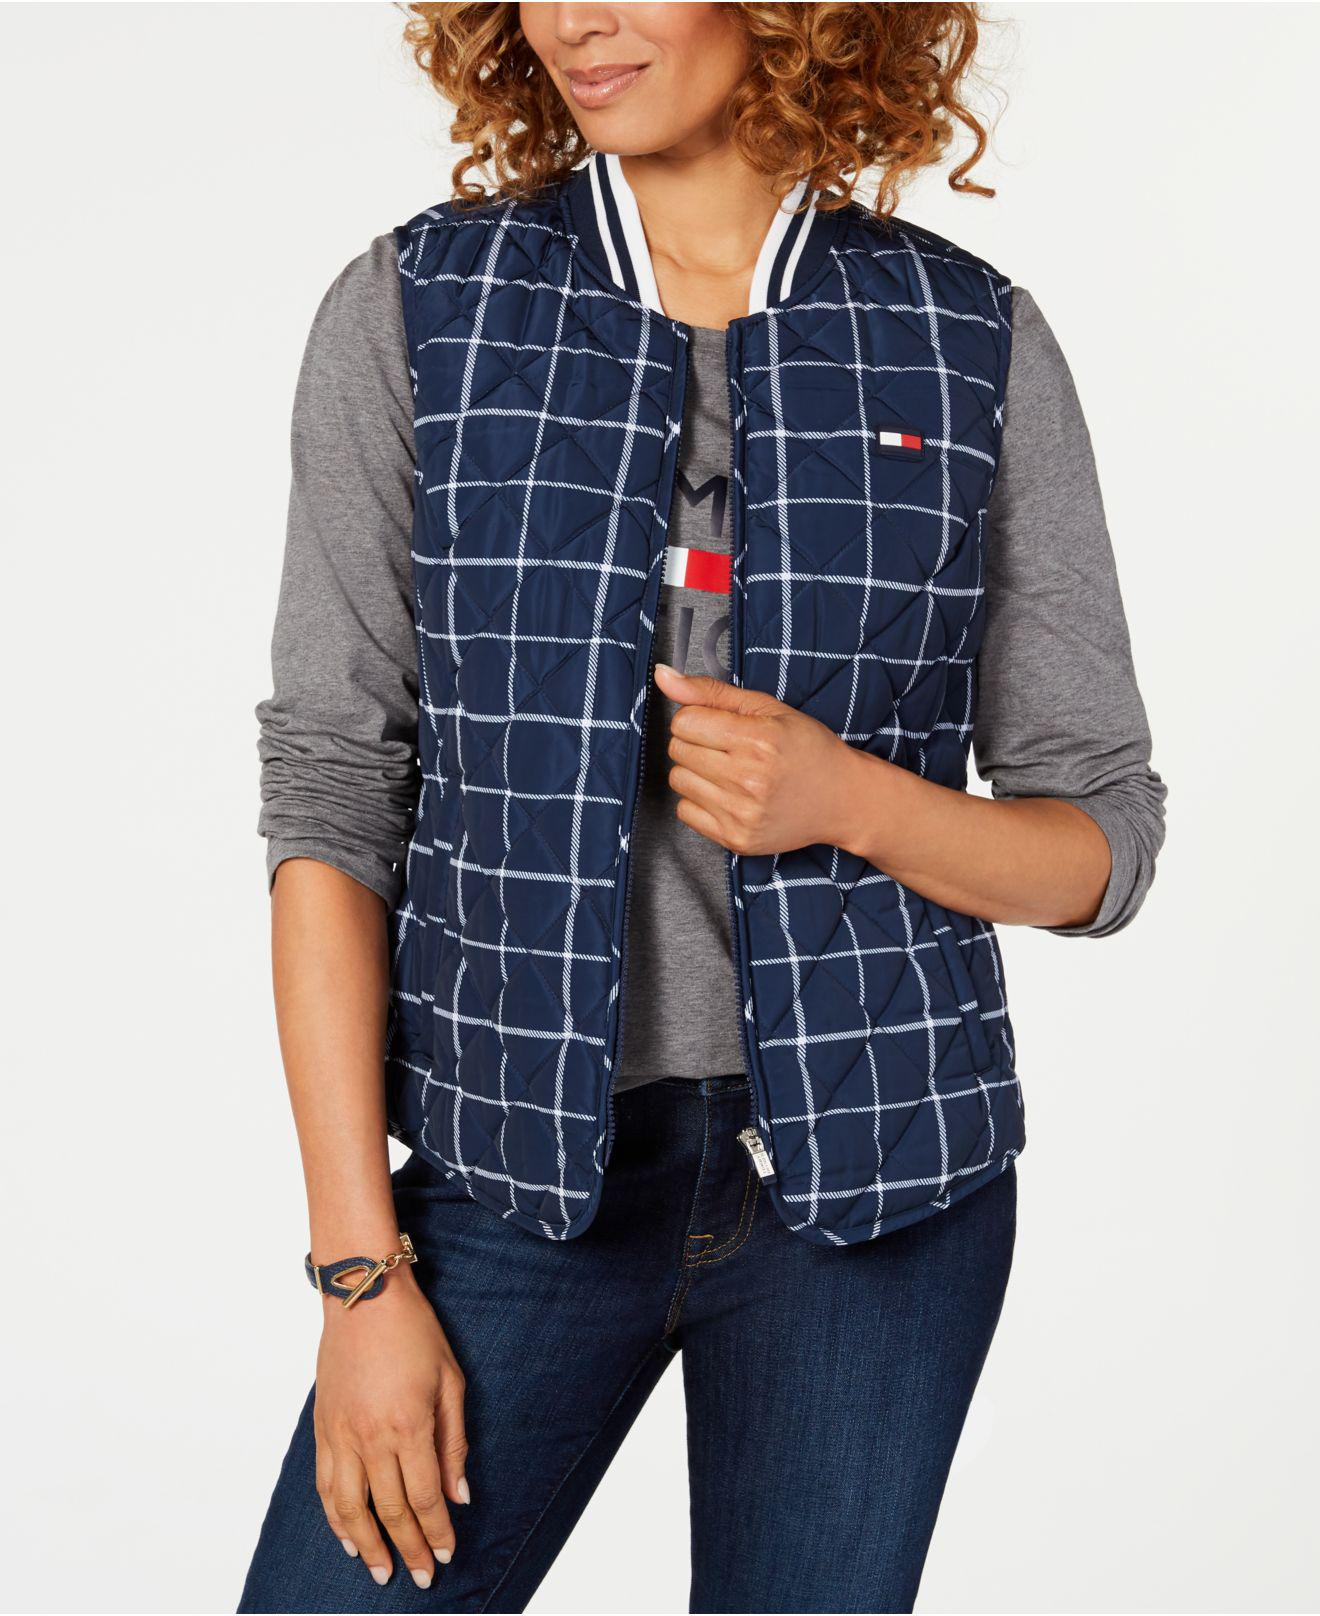 89b0f7215208f Lyst - Tommy Hilfiger Sport Logo Quilted Vest in Blue - Save 26%